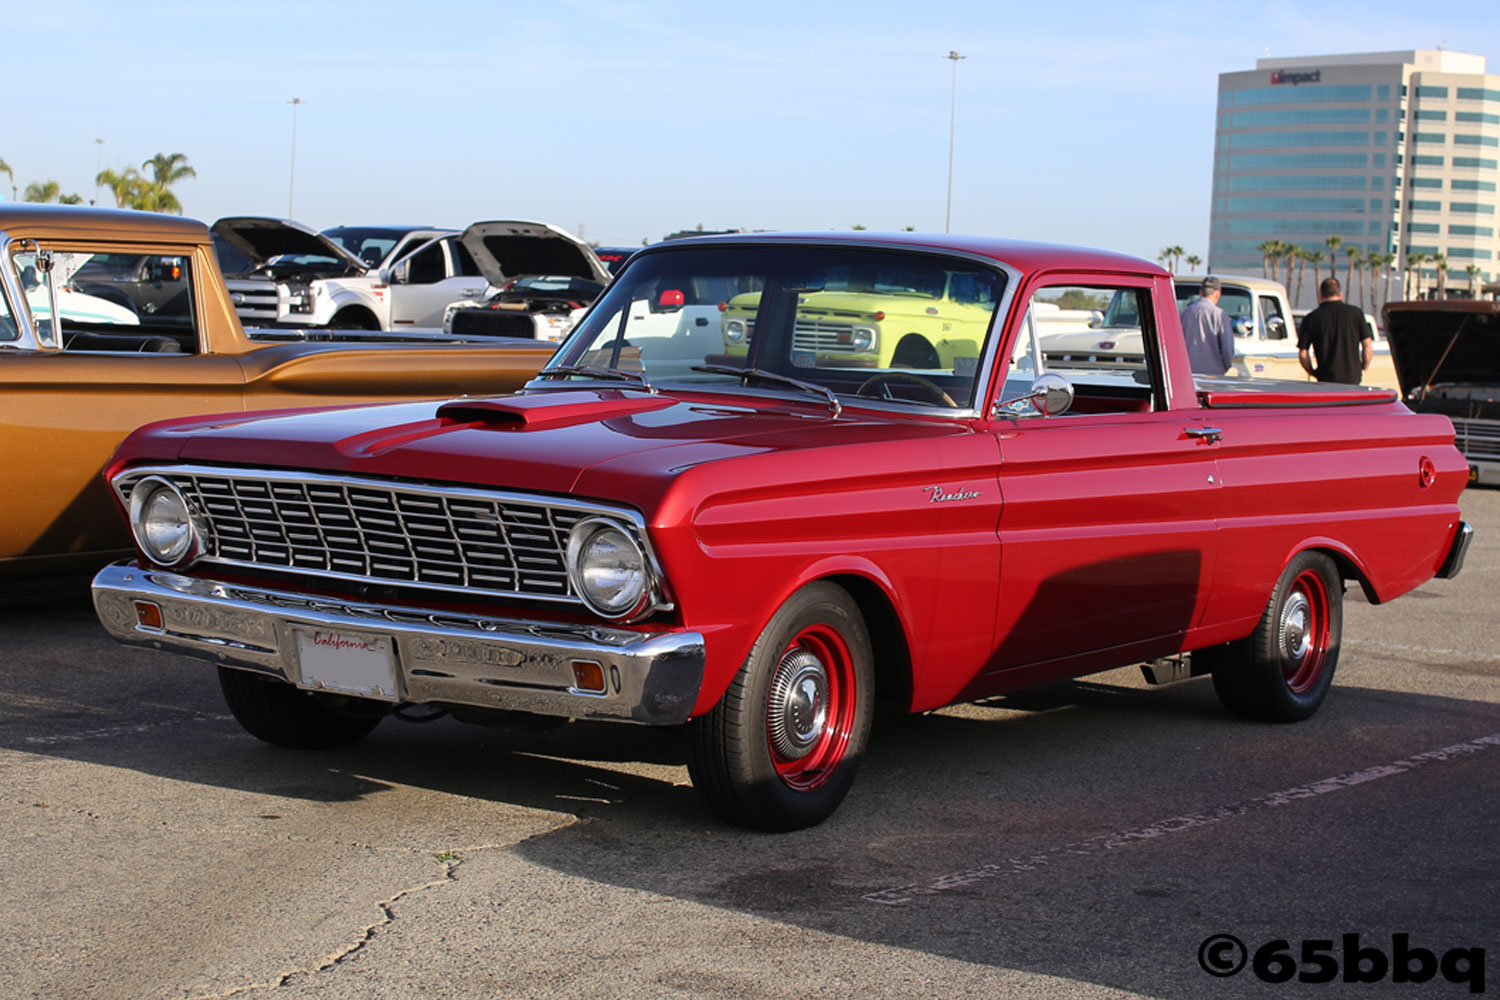 fabulous-fords-forever-april-2019-65bbq-r10.jpg